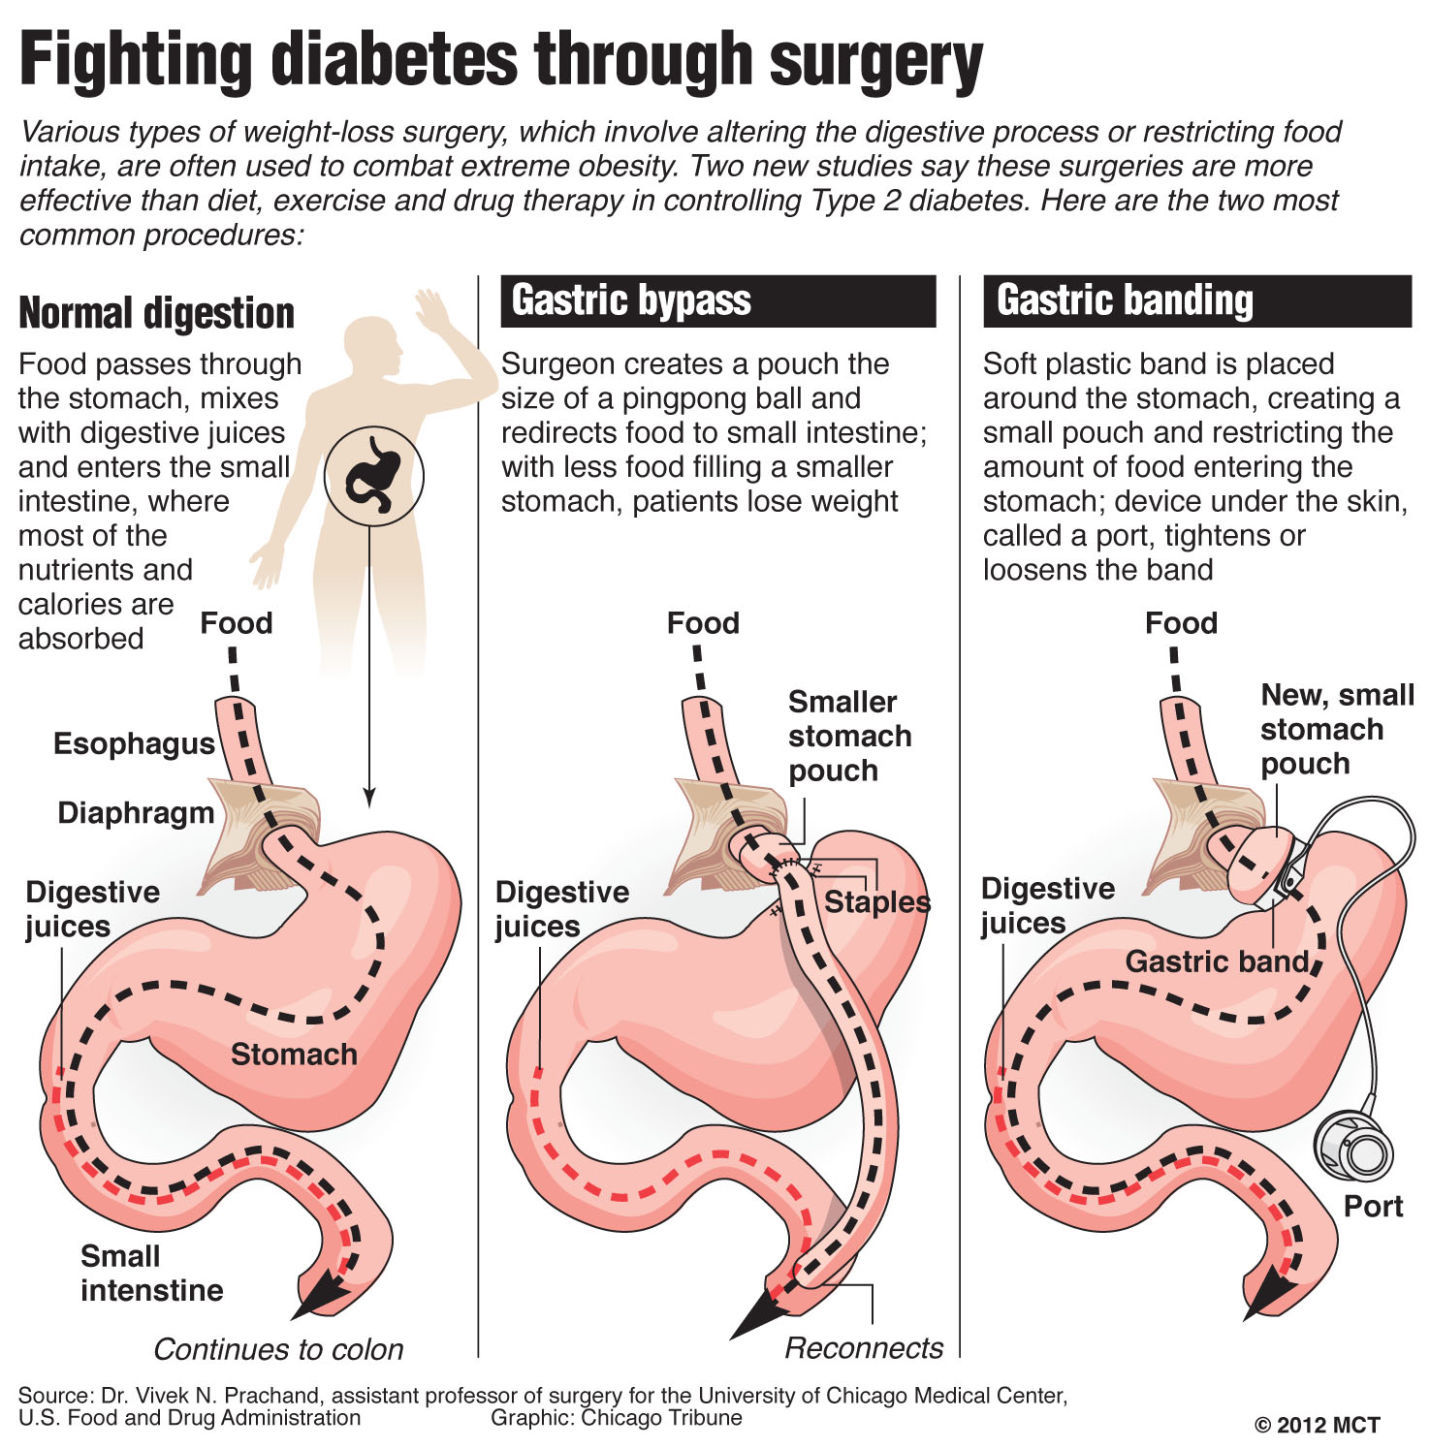 gastric bypass diagram 3 pole 4 wire grounding billings clinic accreditation opens up weight loss surgery